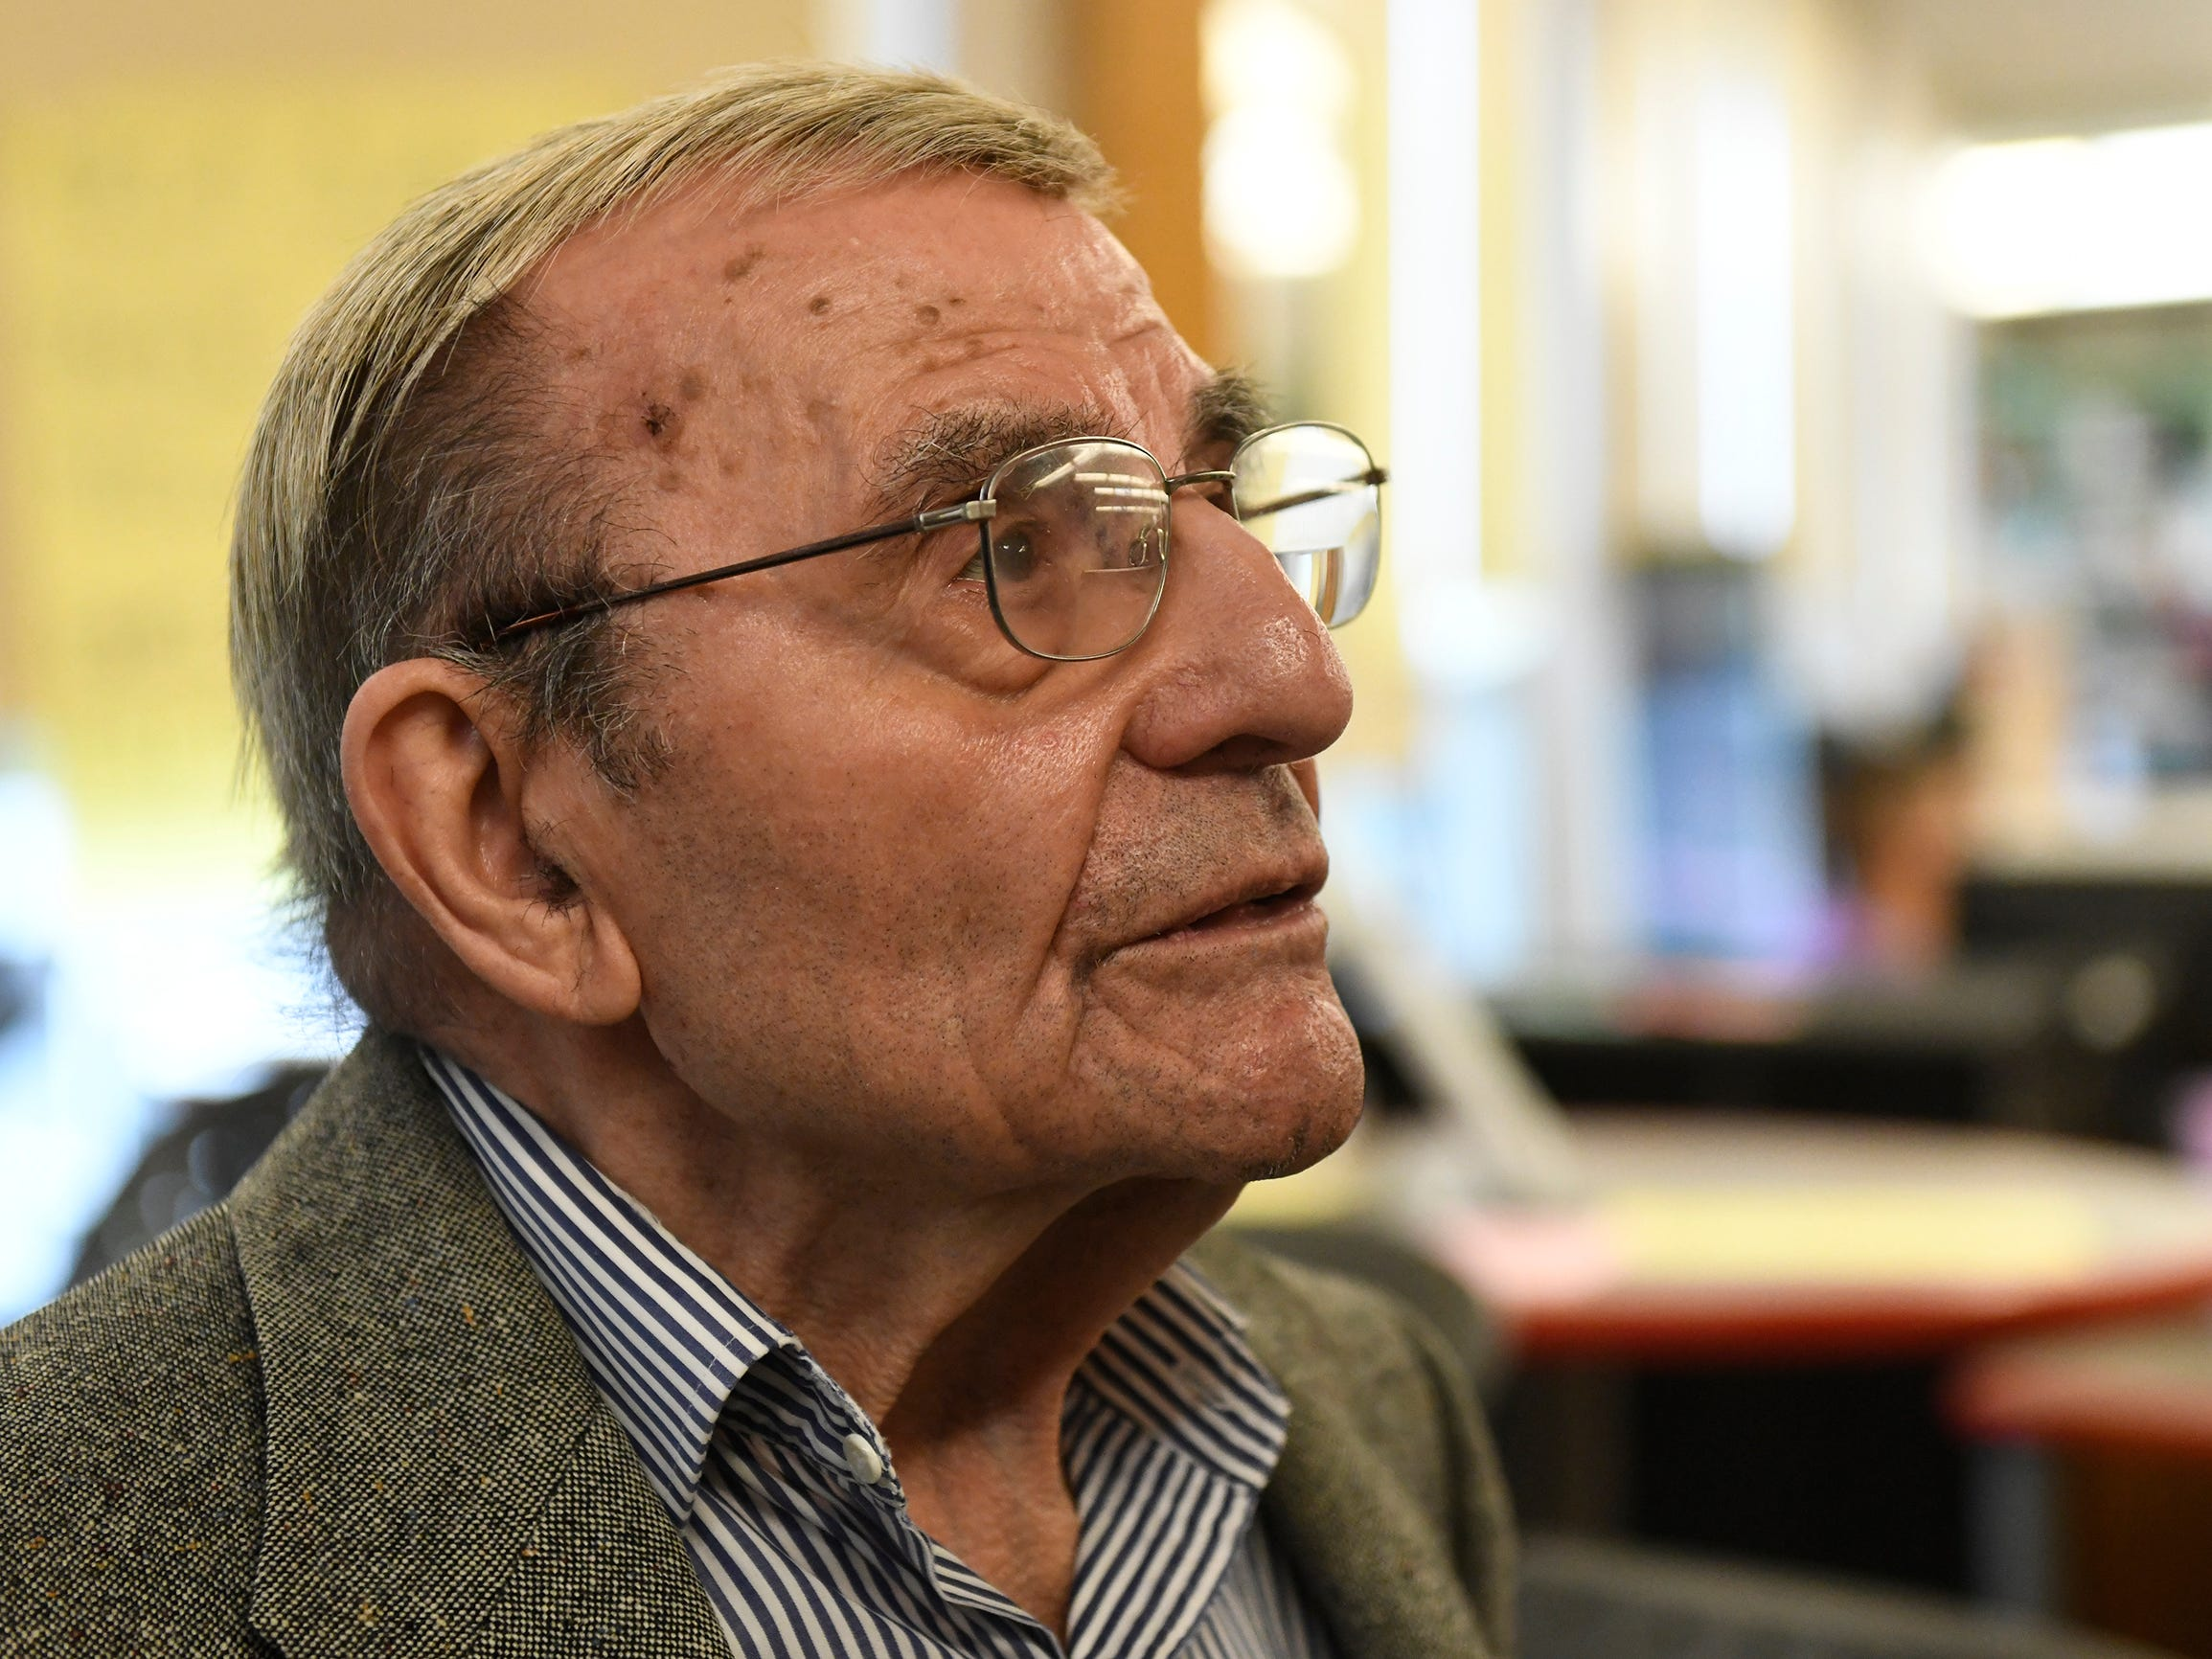 Holocaust survivor Isadore Randel attends the Kuhnreich/Teichman/Media Holocaust Research Center and Permanent Exhibit unveiling at Vineland High School on Wednesday, May 8, 2019.